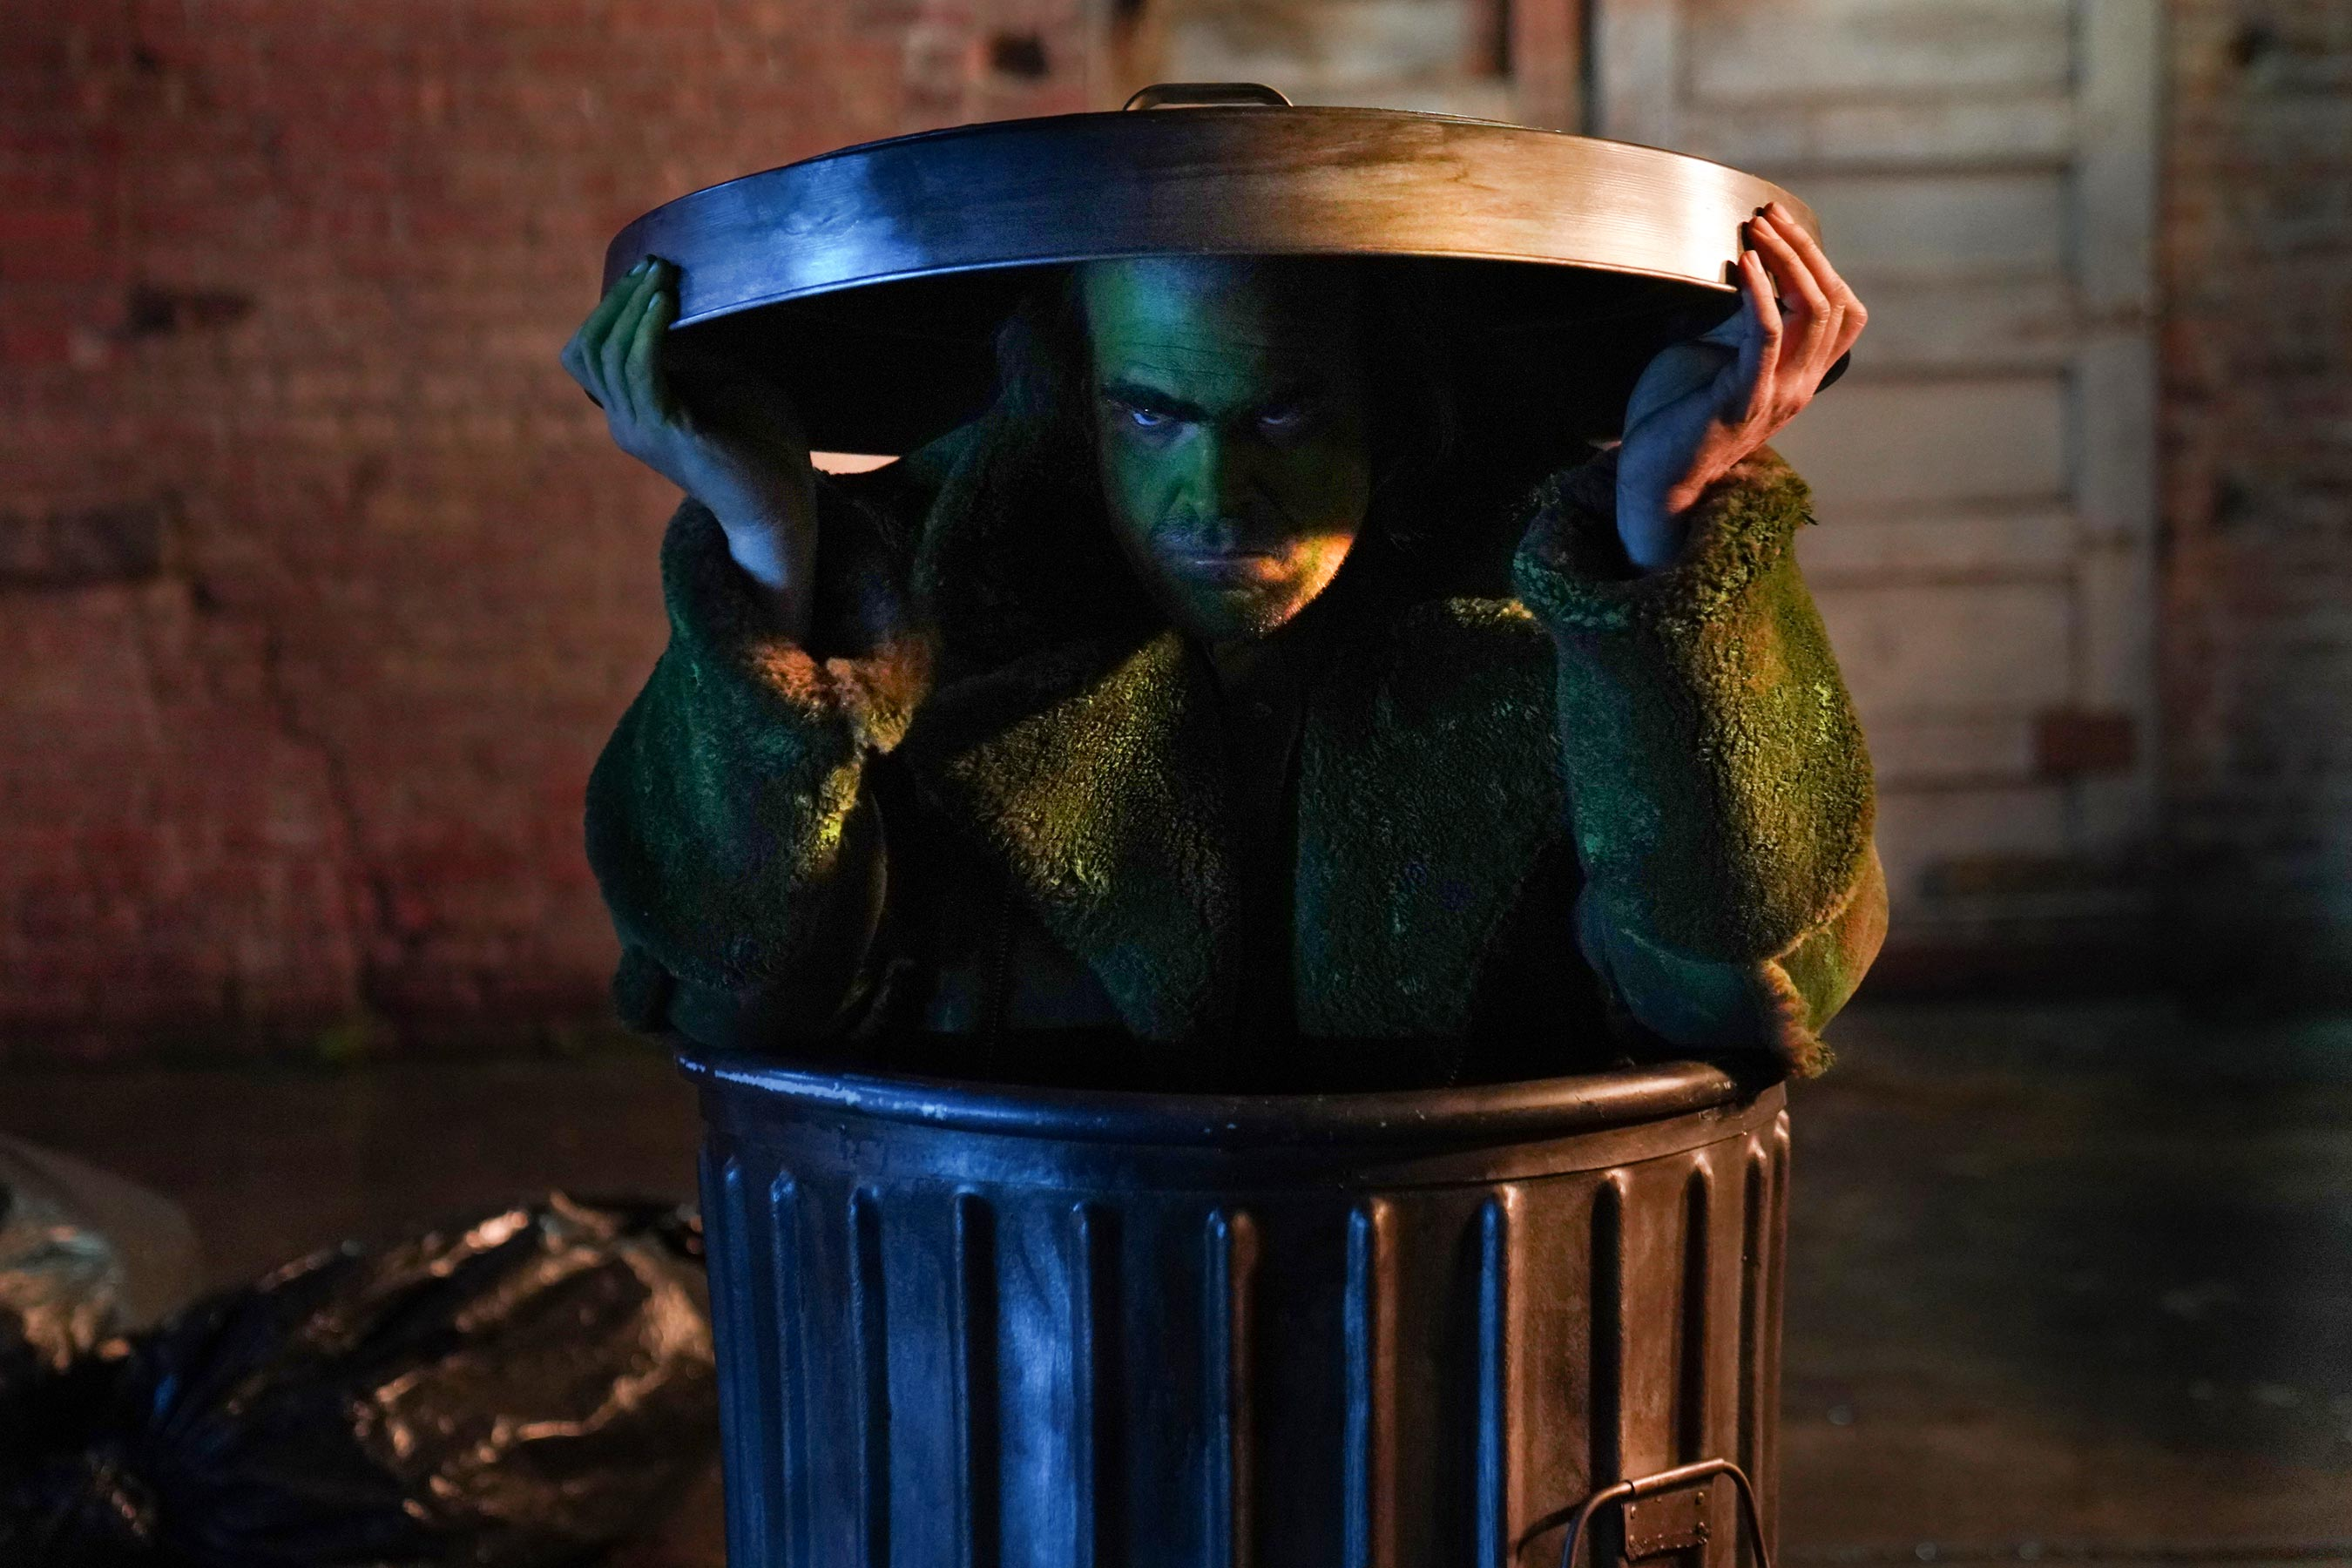 David Harbour is Gritty Oscar the Grouch in SNL's Brilliant Joker Parody